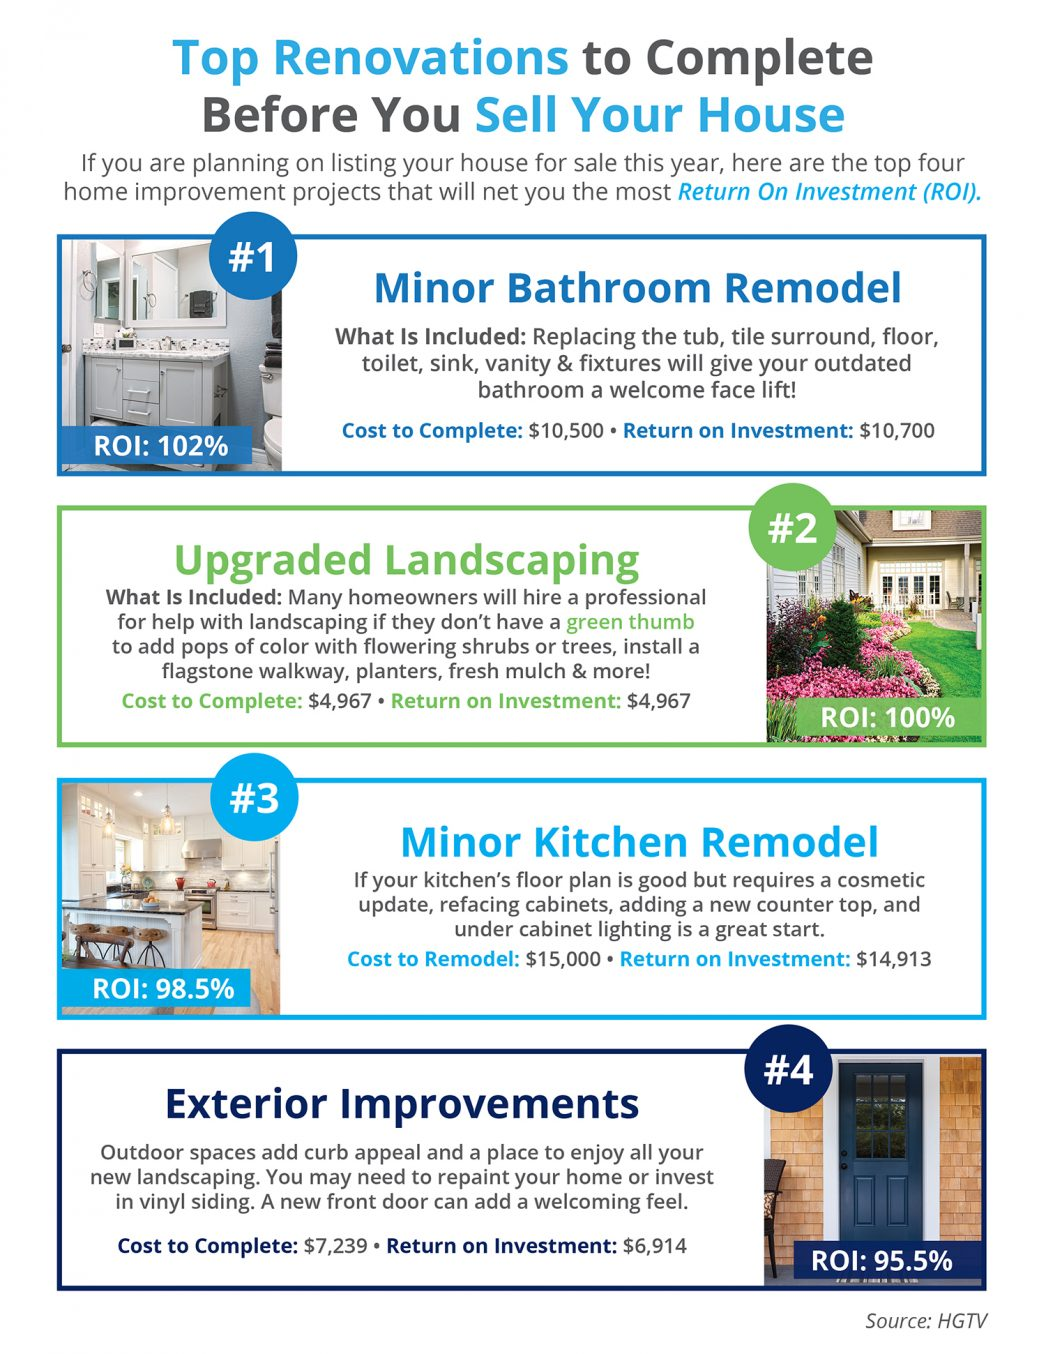 Top Renovations to Complete Before You Sell Your House [INFOGRAPHIC]